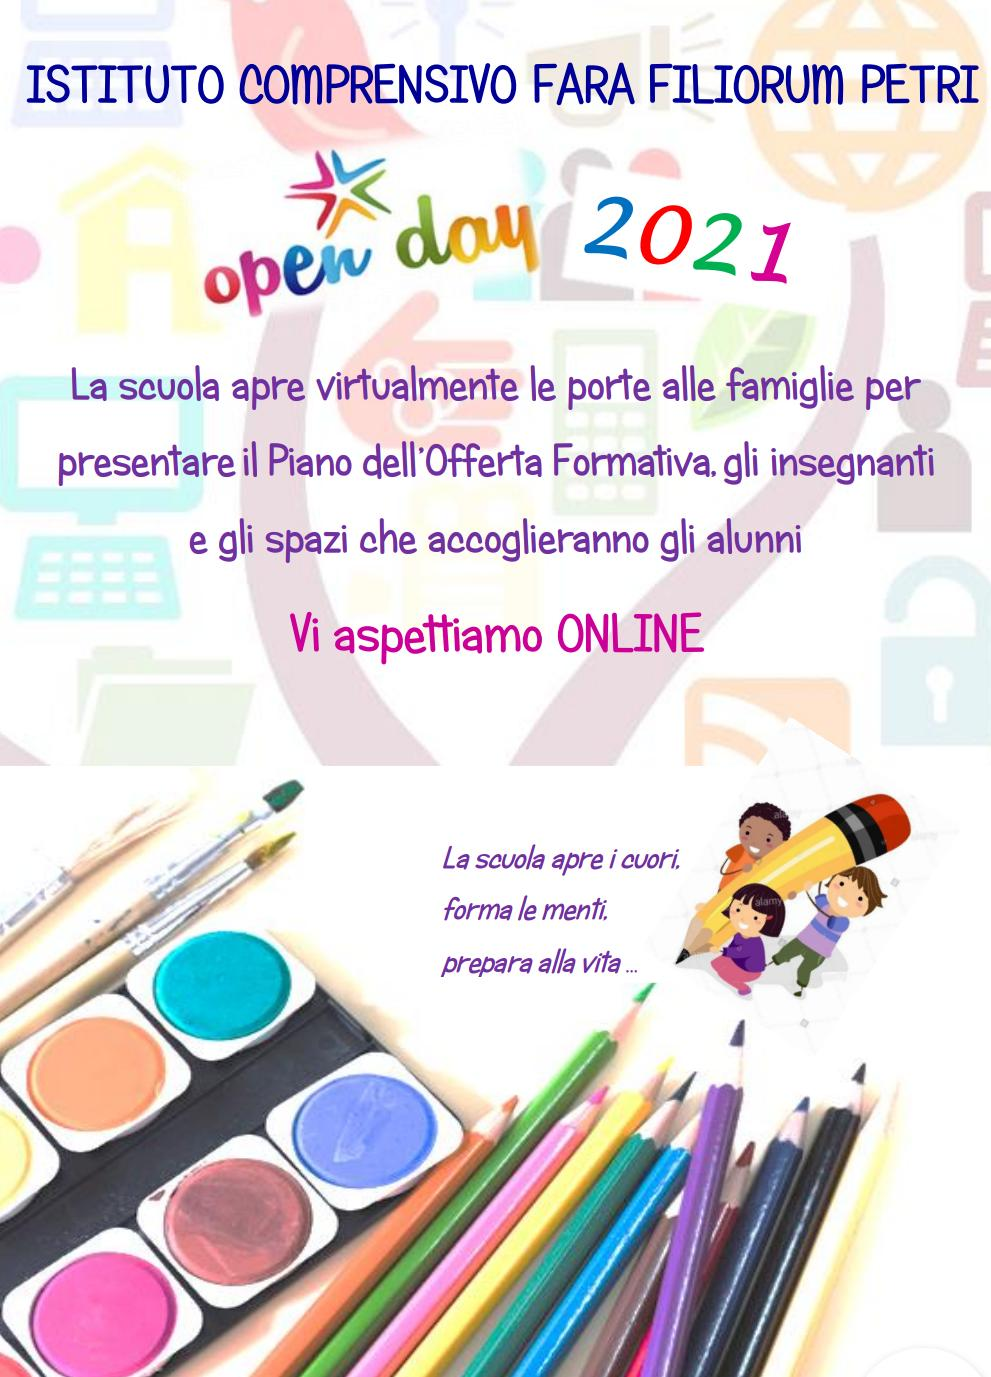 OPEN DAY 2021 IC FARA FILIORUM PETRI